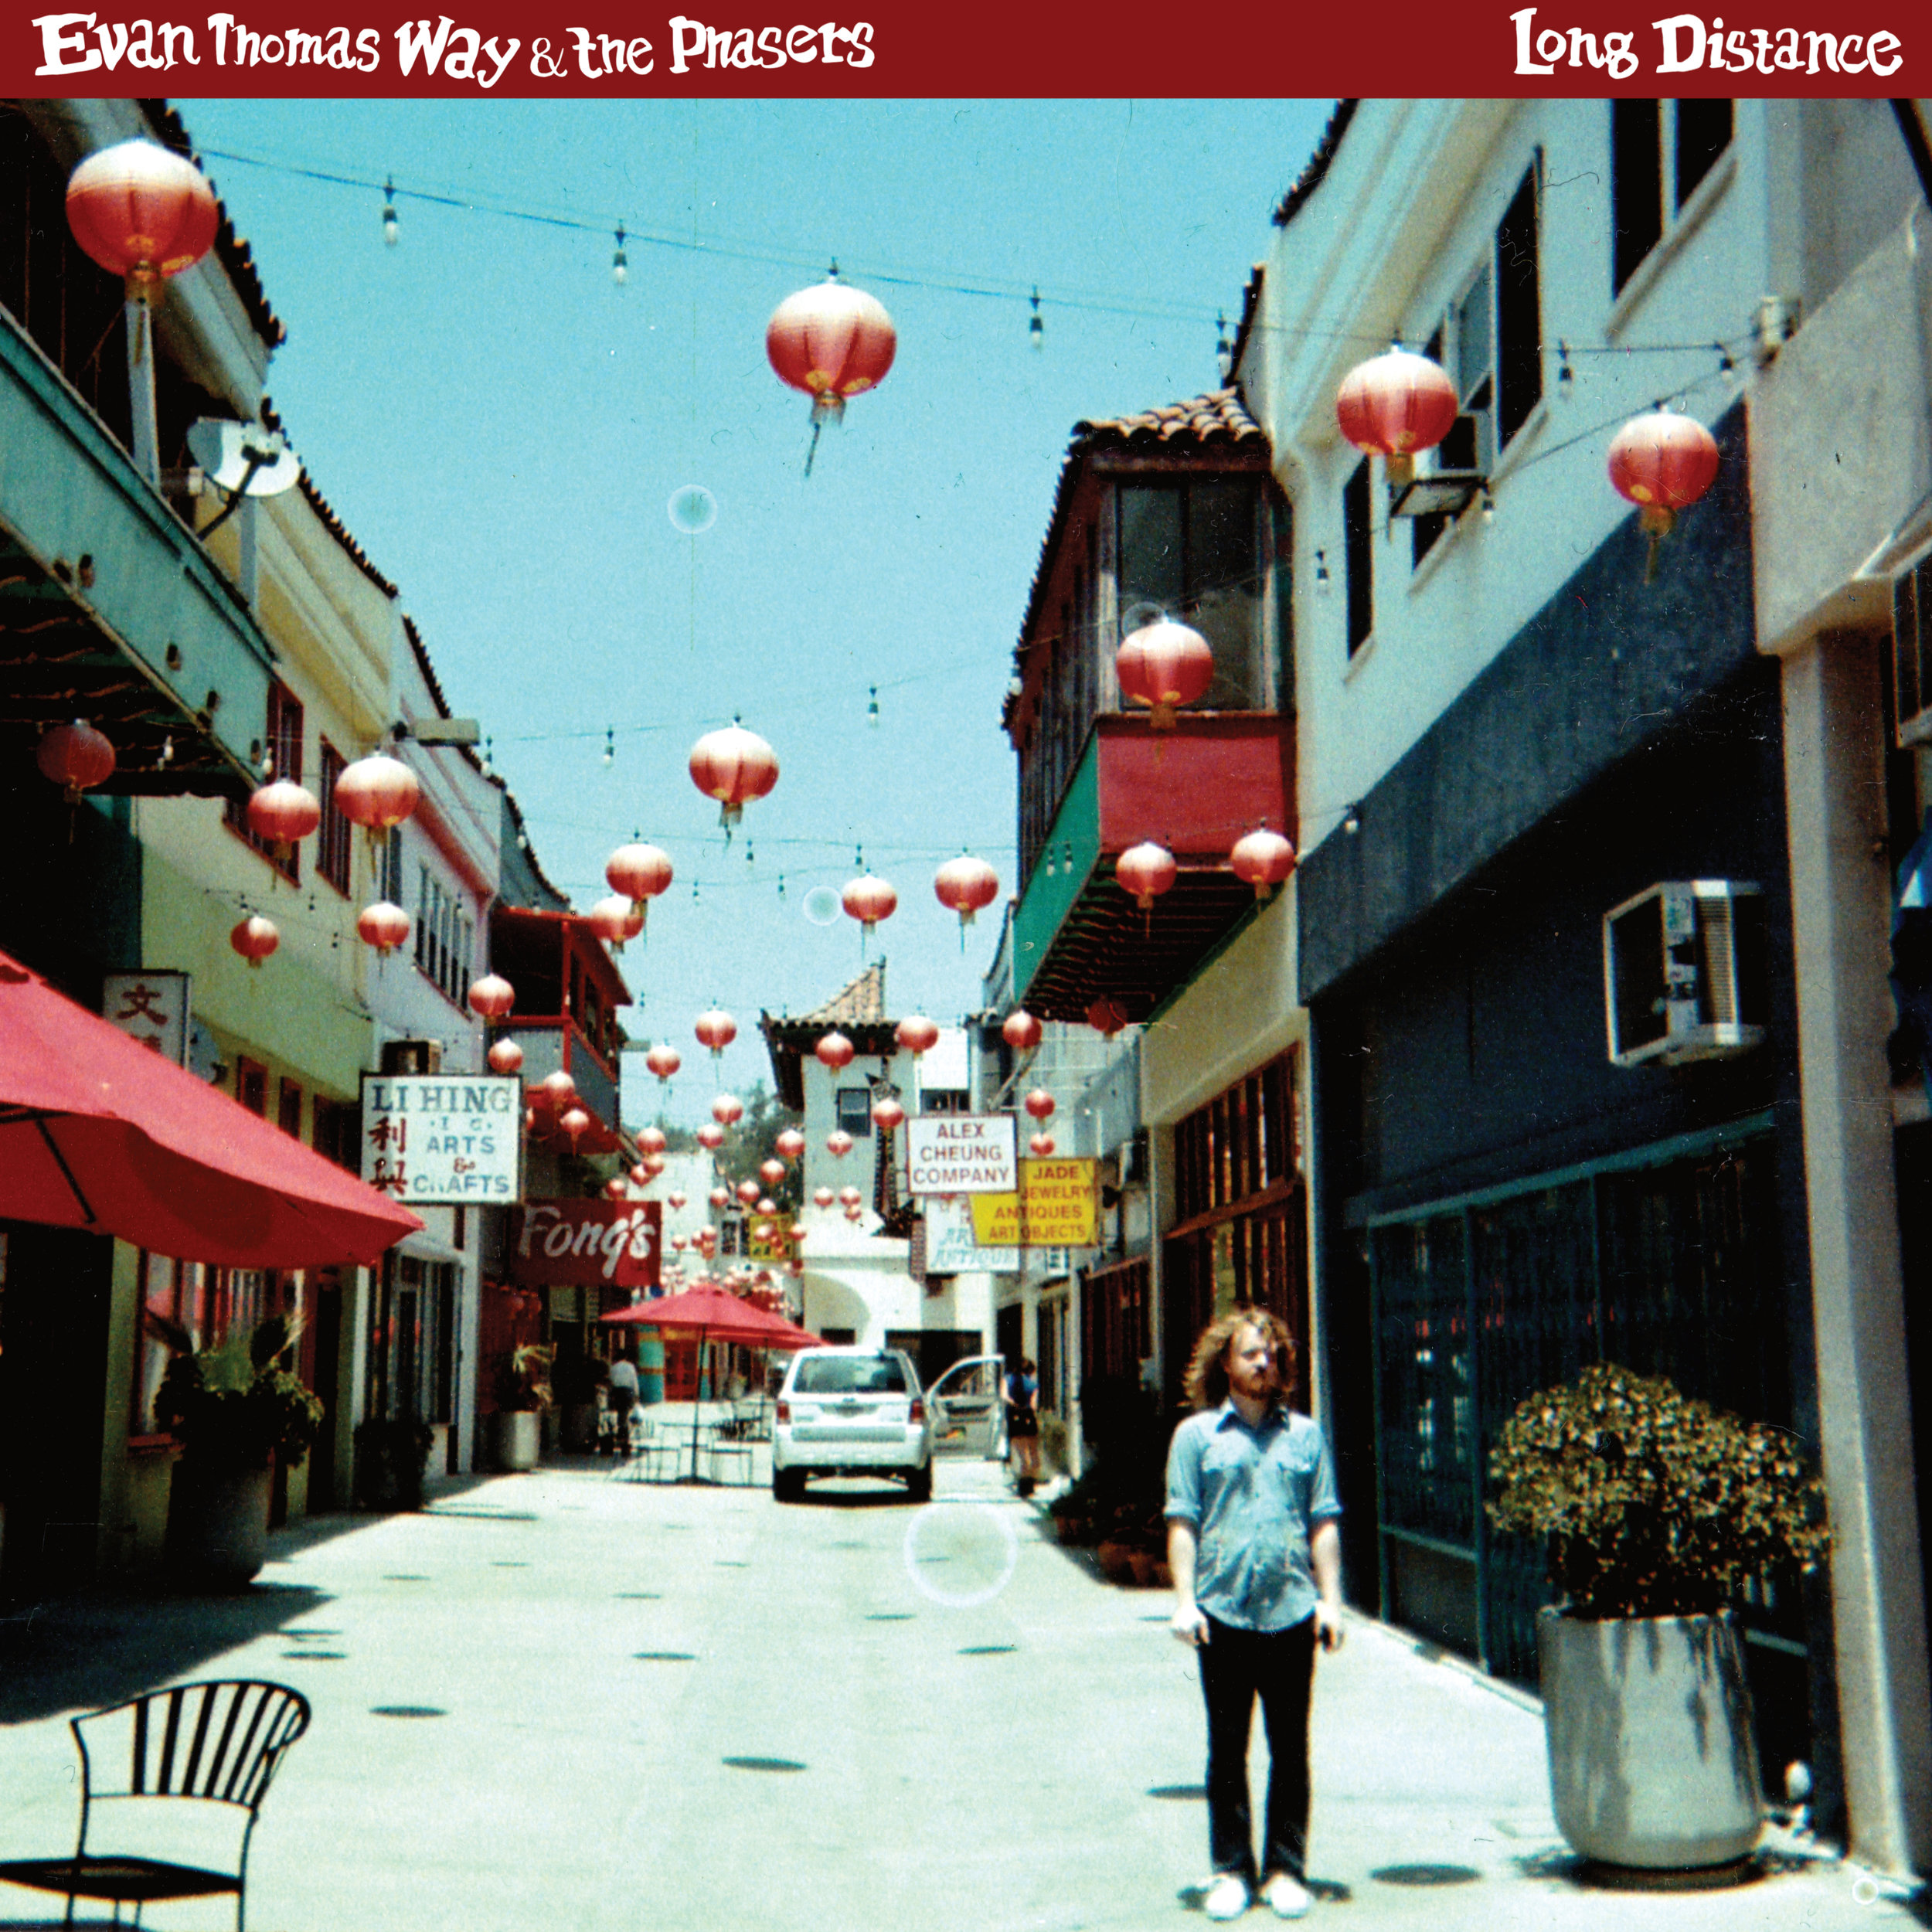 Evan Thomas Way & The Phasers - Long Distance